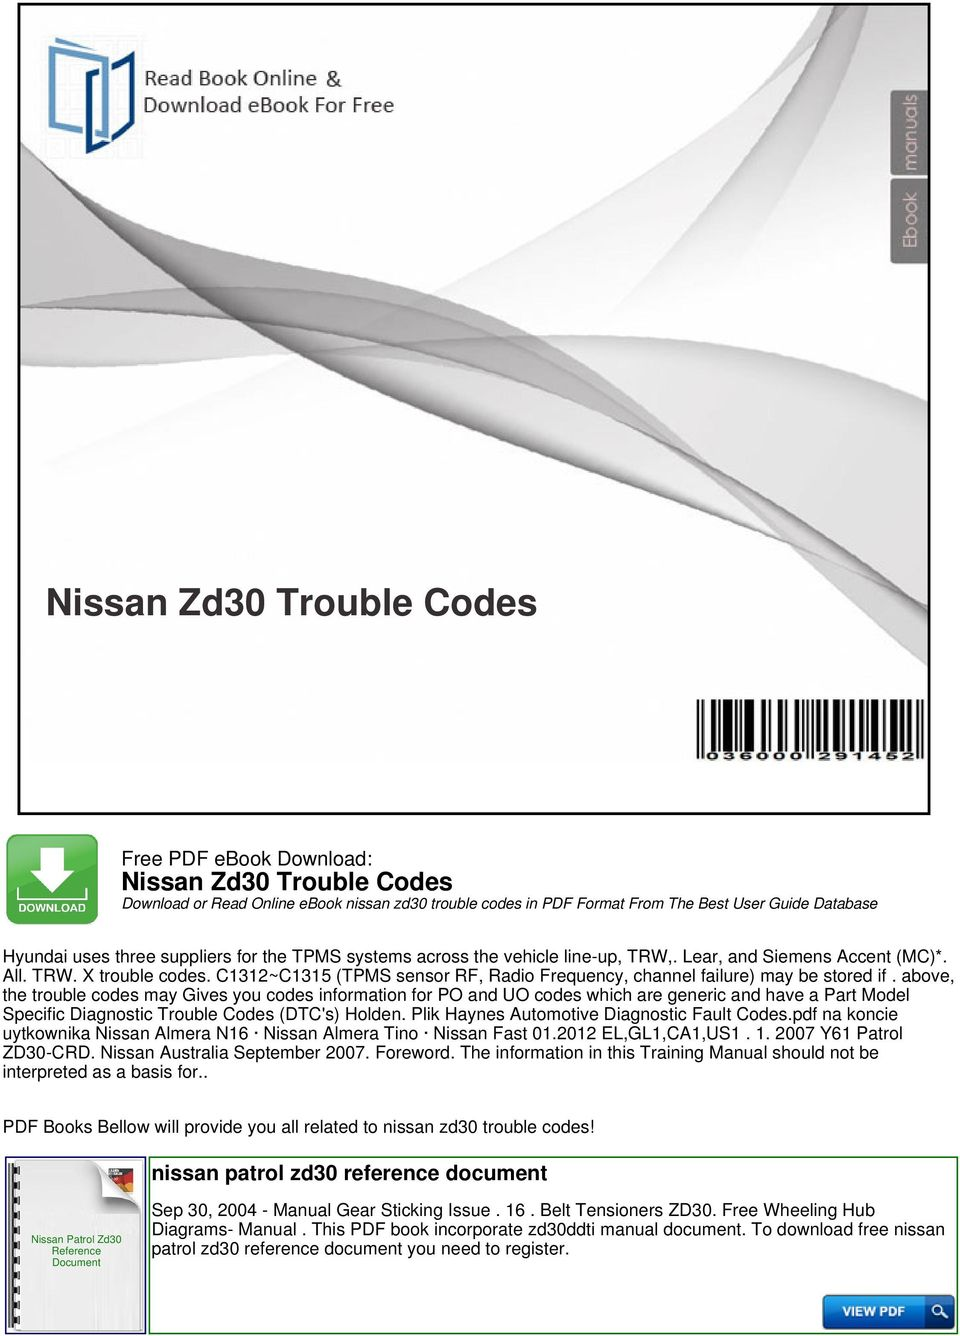 Nissan Zd30 Trouble Codes Pdf 2011 Versa Abs Sensor Wiring Diagram Above The May Gives You Information For Po And Uo Which